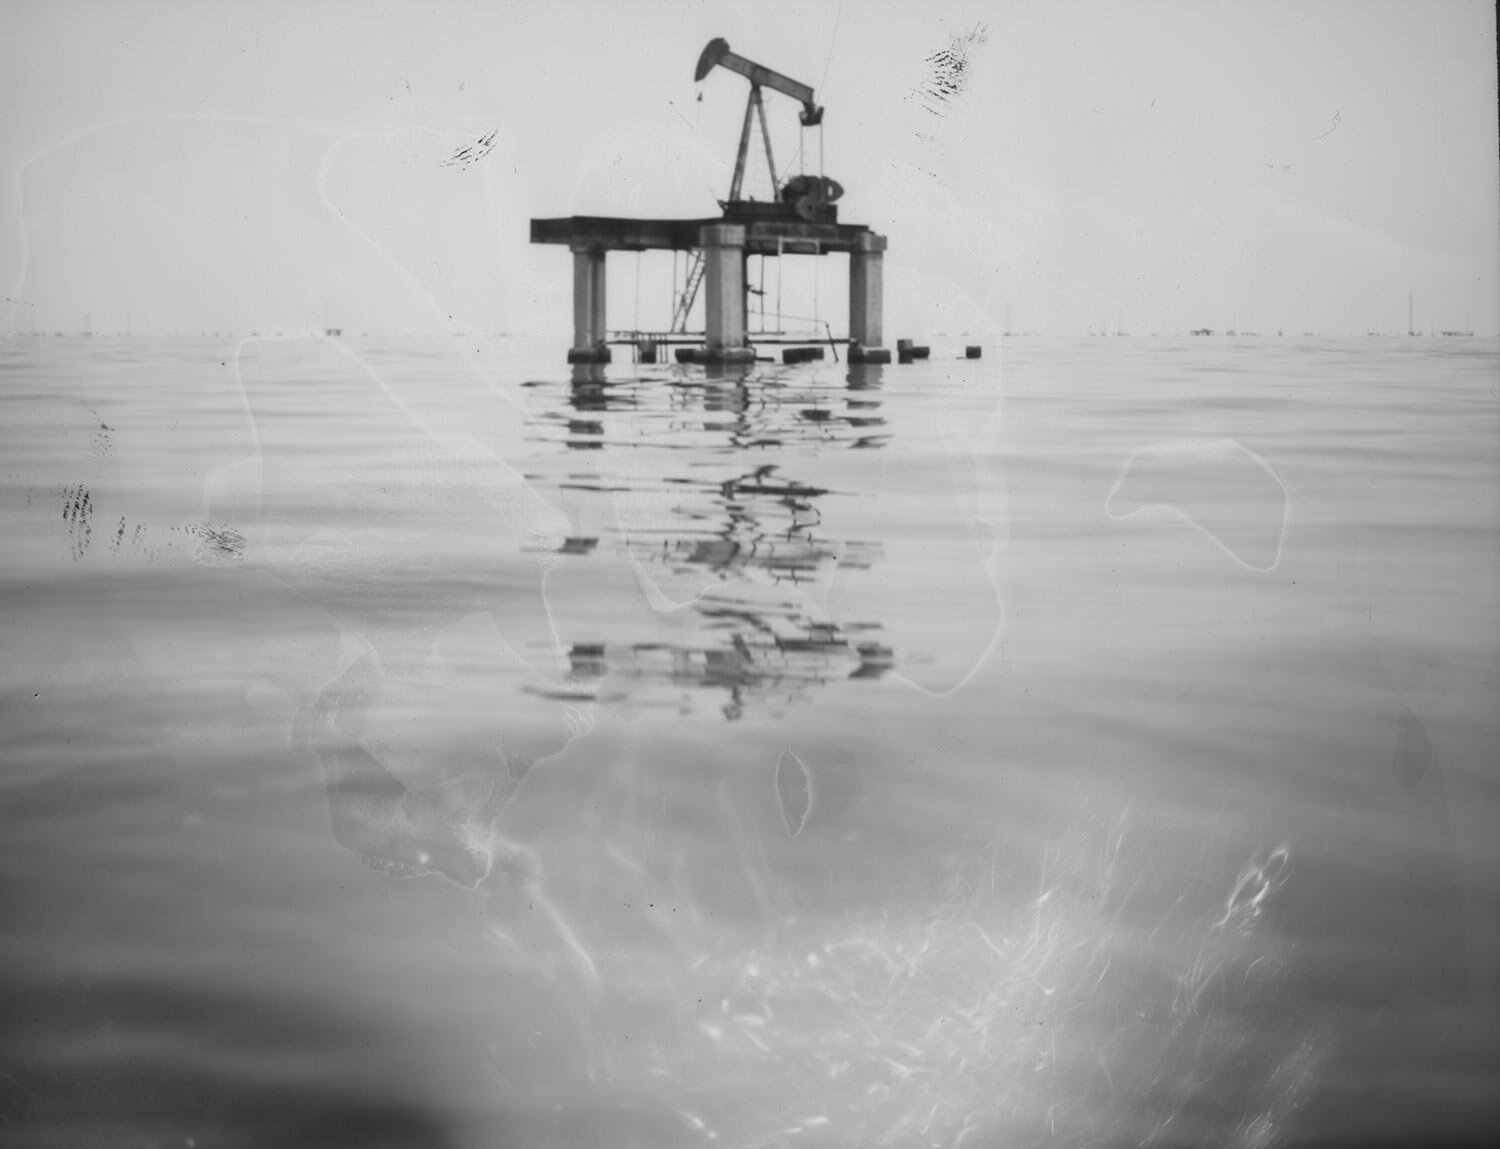 In this July 8, 2019 photo, an abandoned state-run PDVSA oil platform on Lake Maracaibo at Cabimas, Venezuela. (AP Photo/Rodrigo Abd)